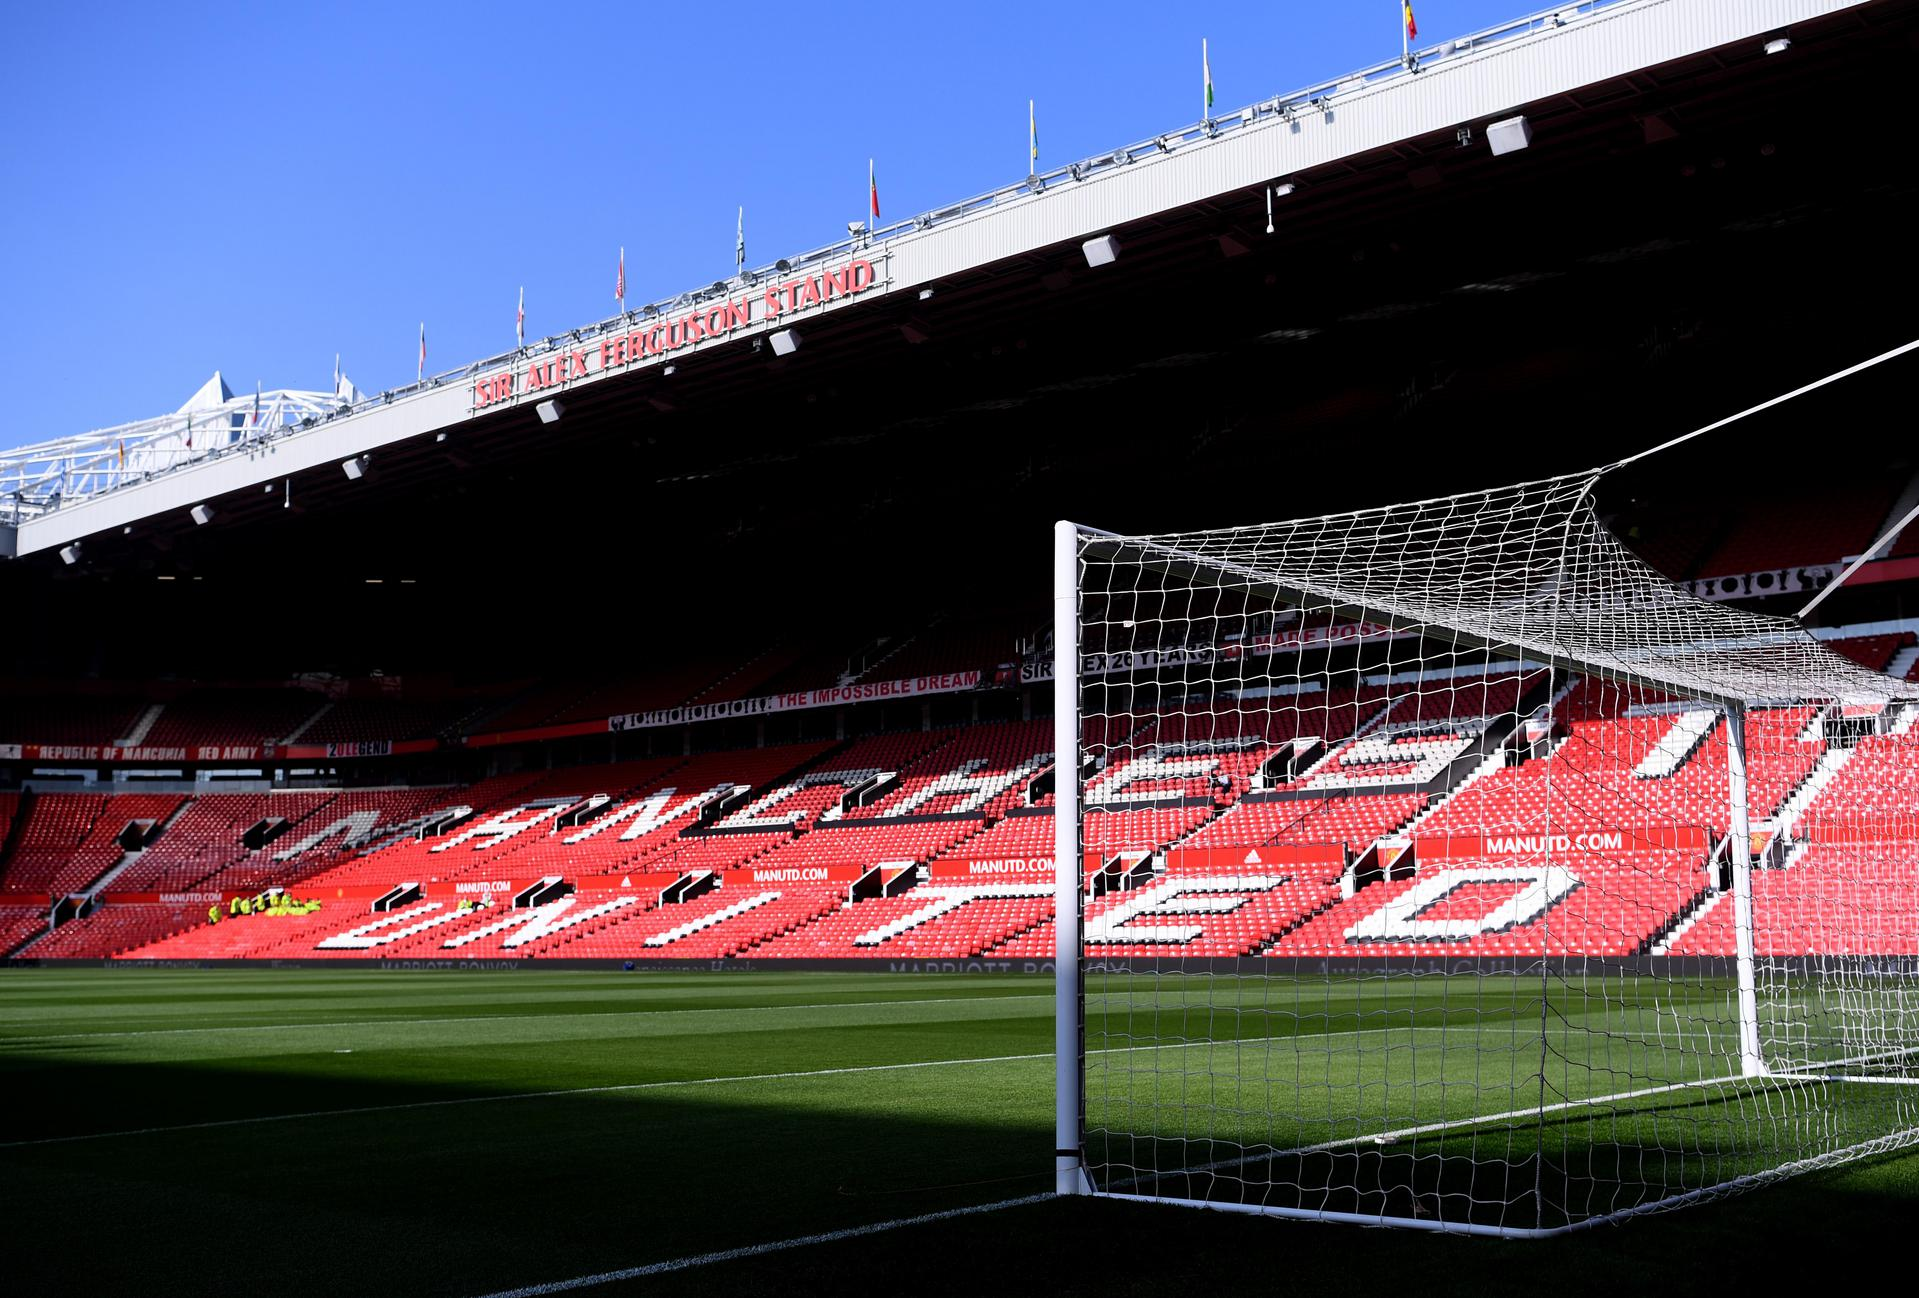 A view of one net and Sir Alex Ferguson Stand at Old Trafford